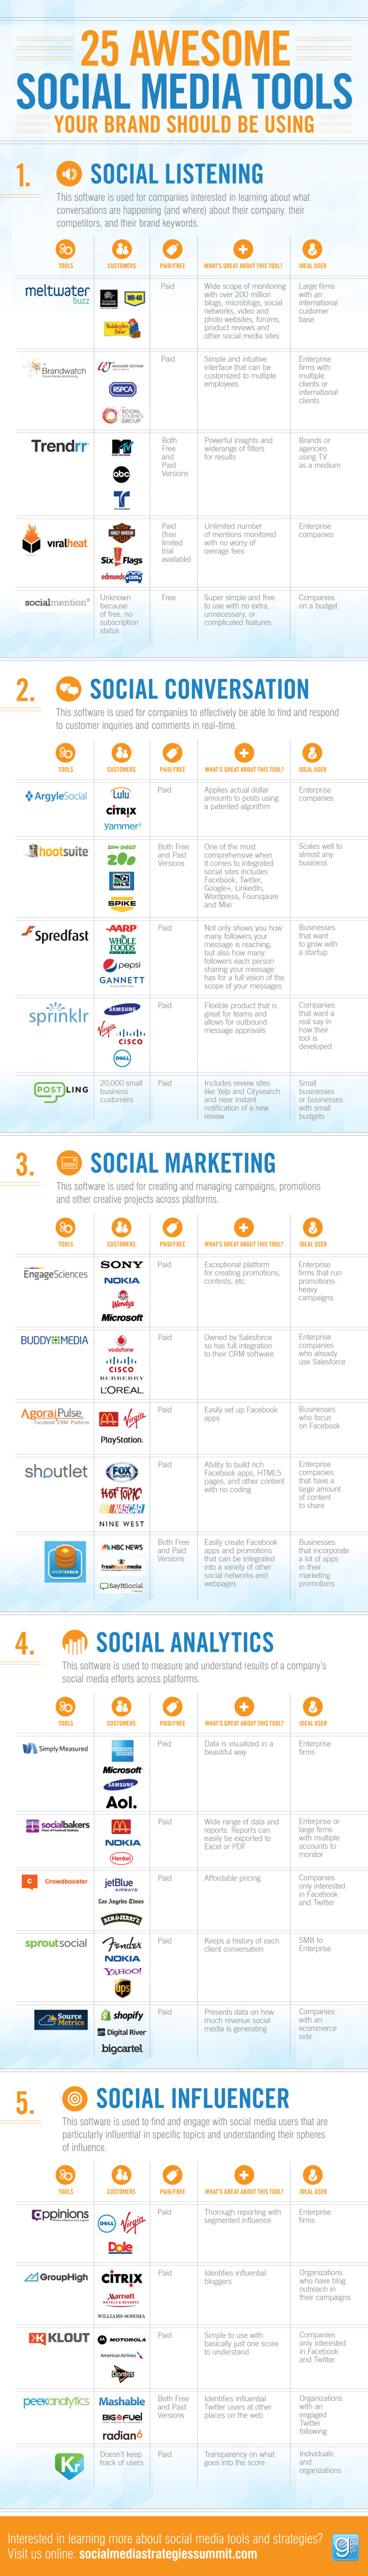 Social Business Tools